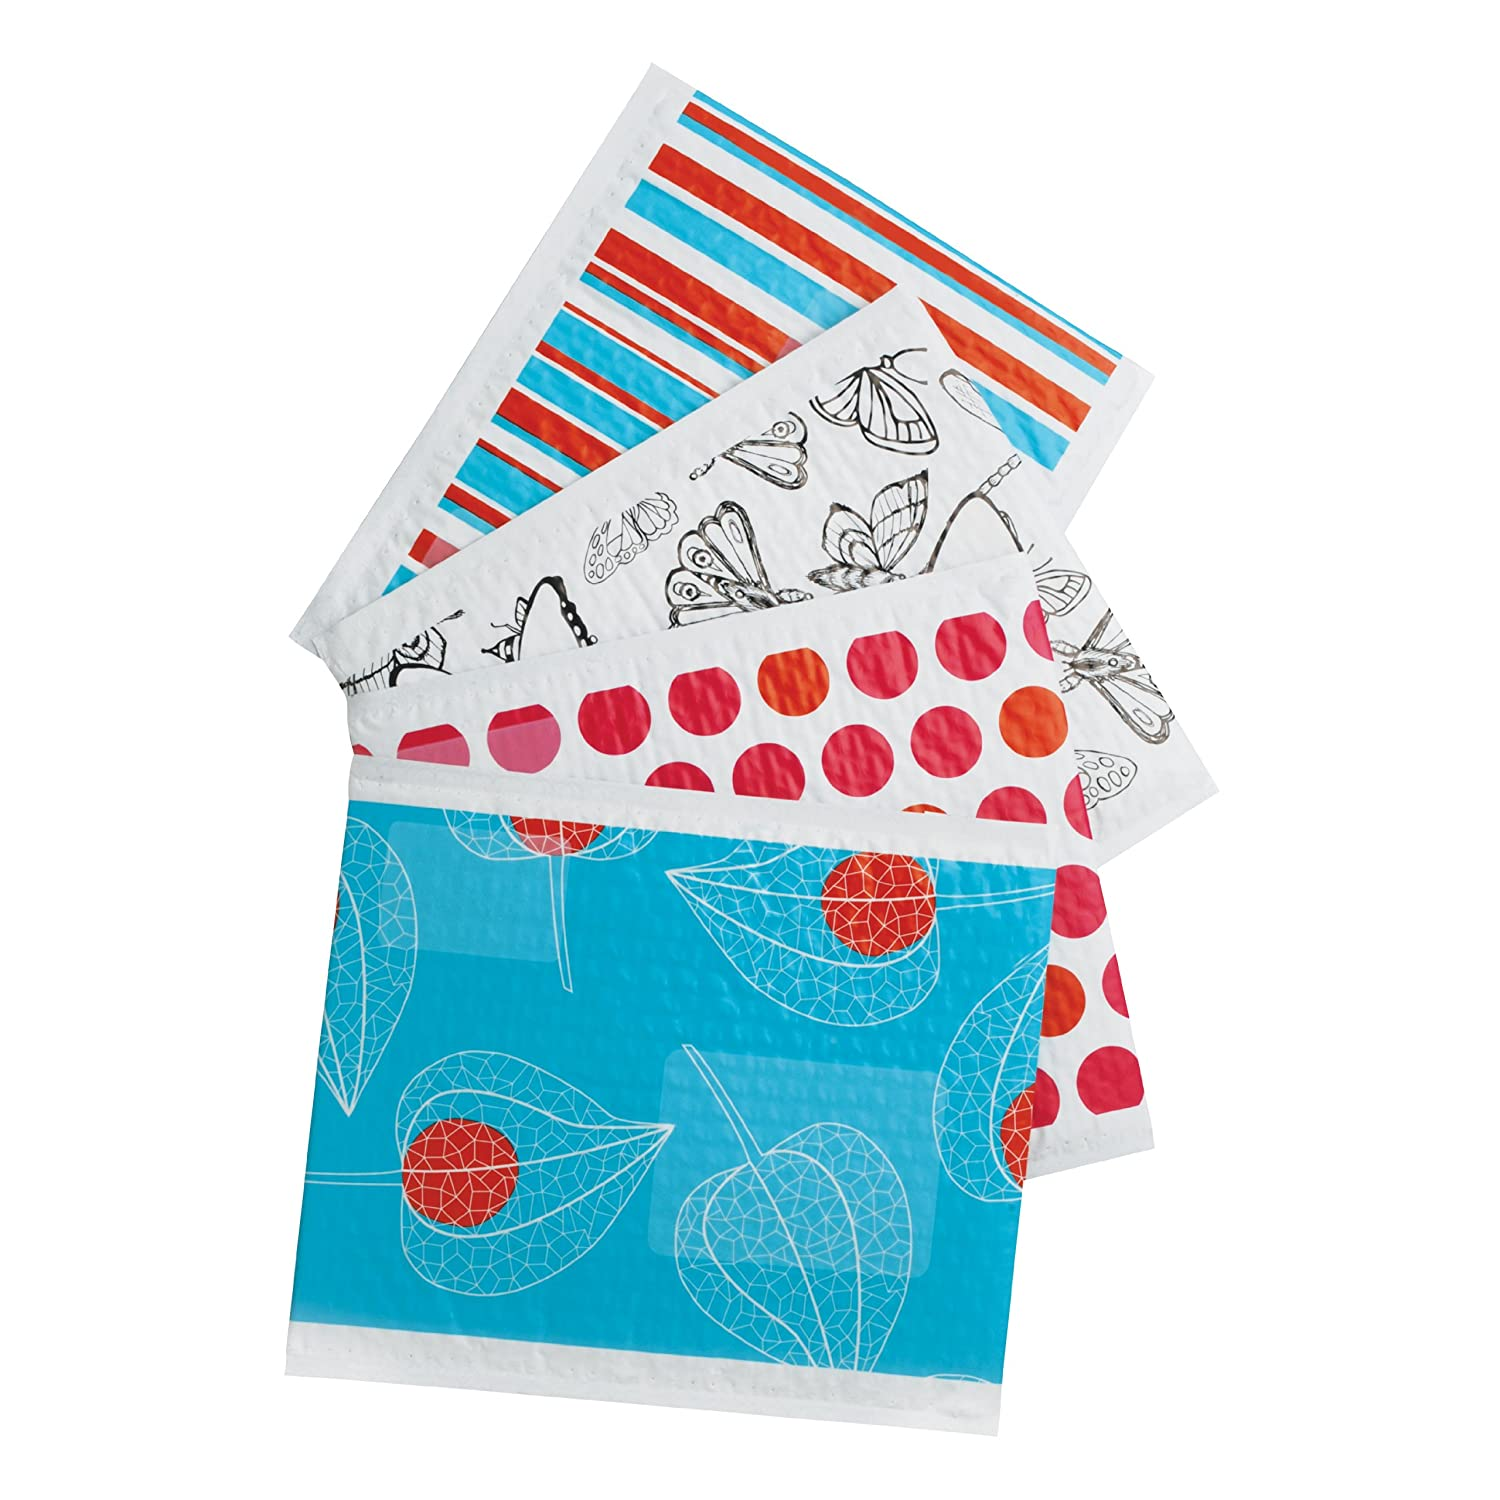 Scotch Decorative Plastic Bubble Mailer Assorted Designs Size 0 6 x 9.25 Inches, 12-Pack (8913-DS) 3M Office Products 8913-DS-ESF